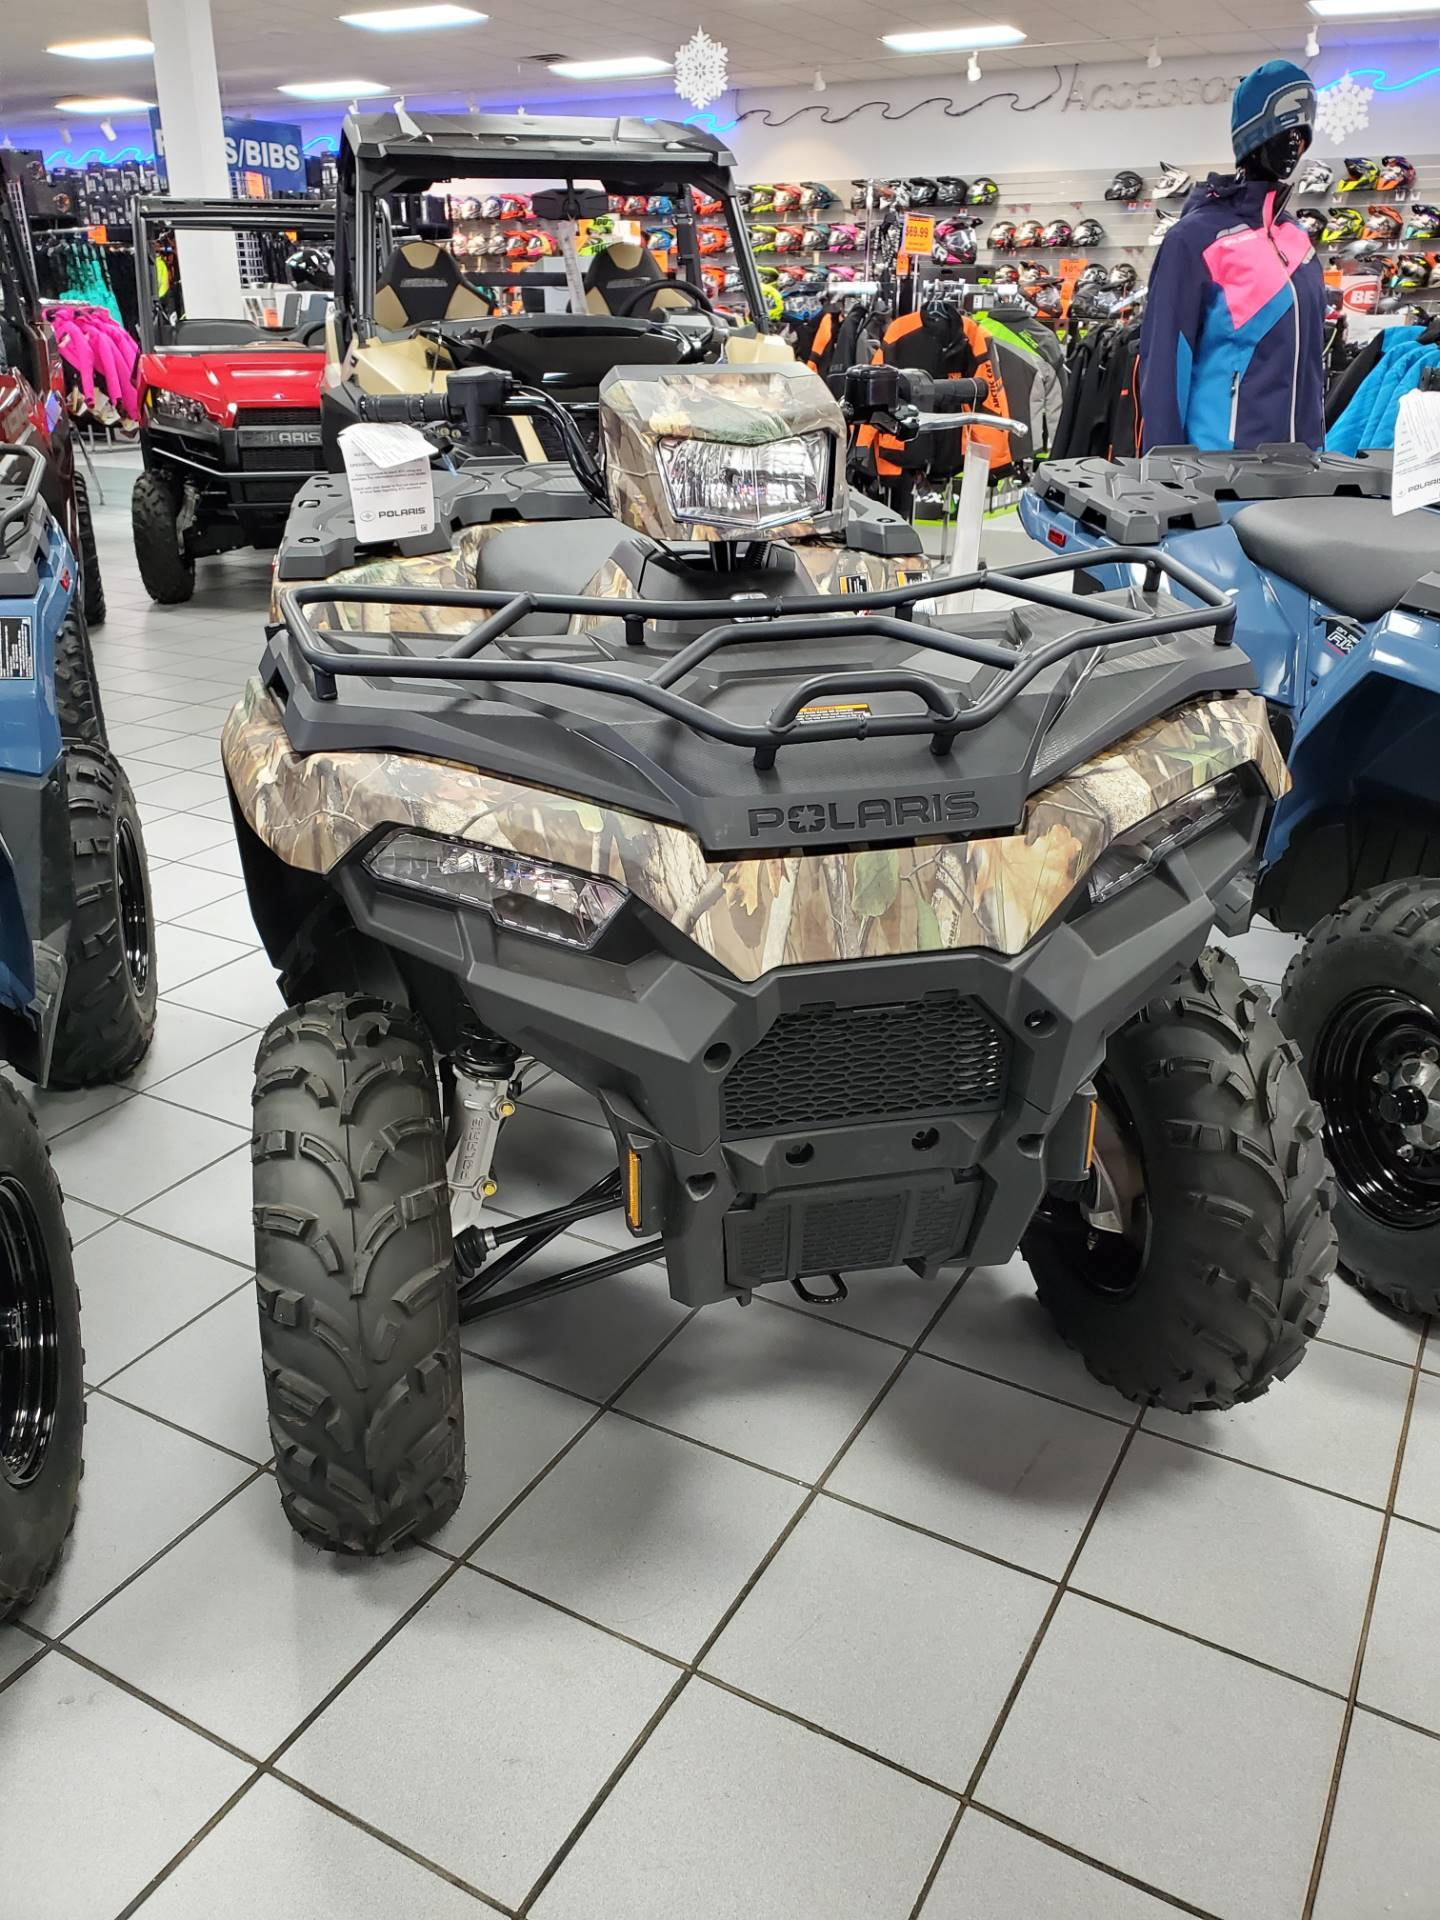 2021 Polaris Sportsman 570 in Kaukauna, Wisconsin - Photo 2